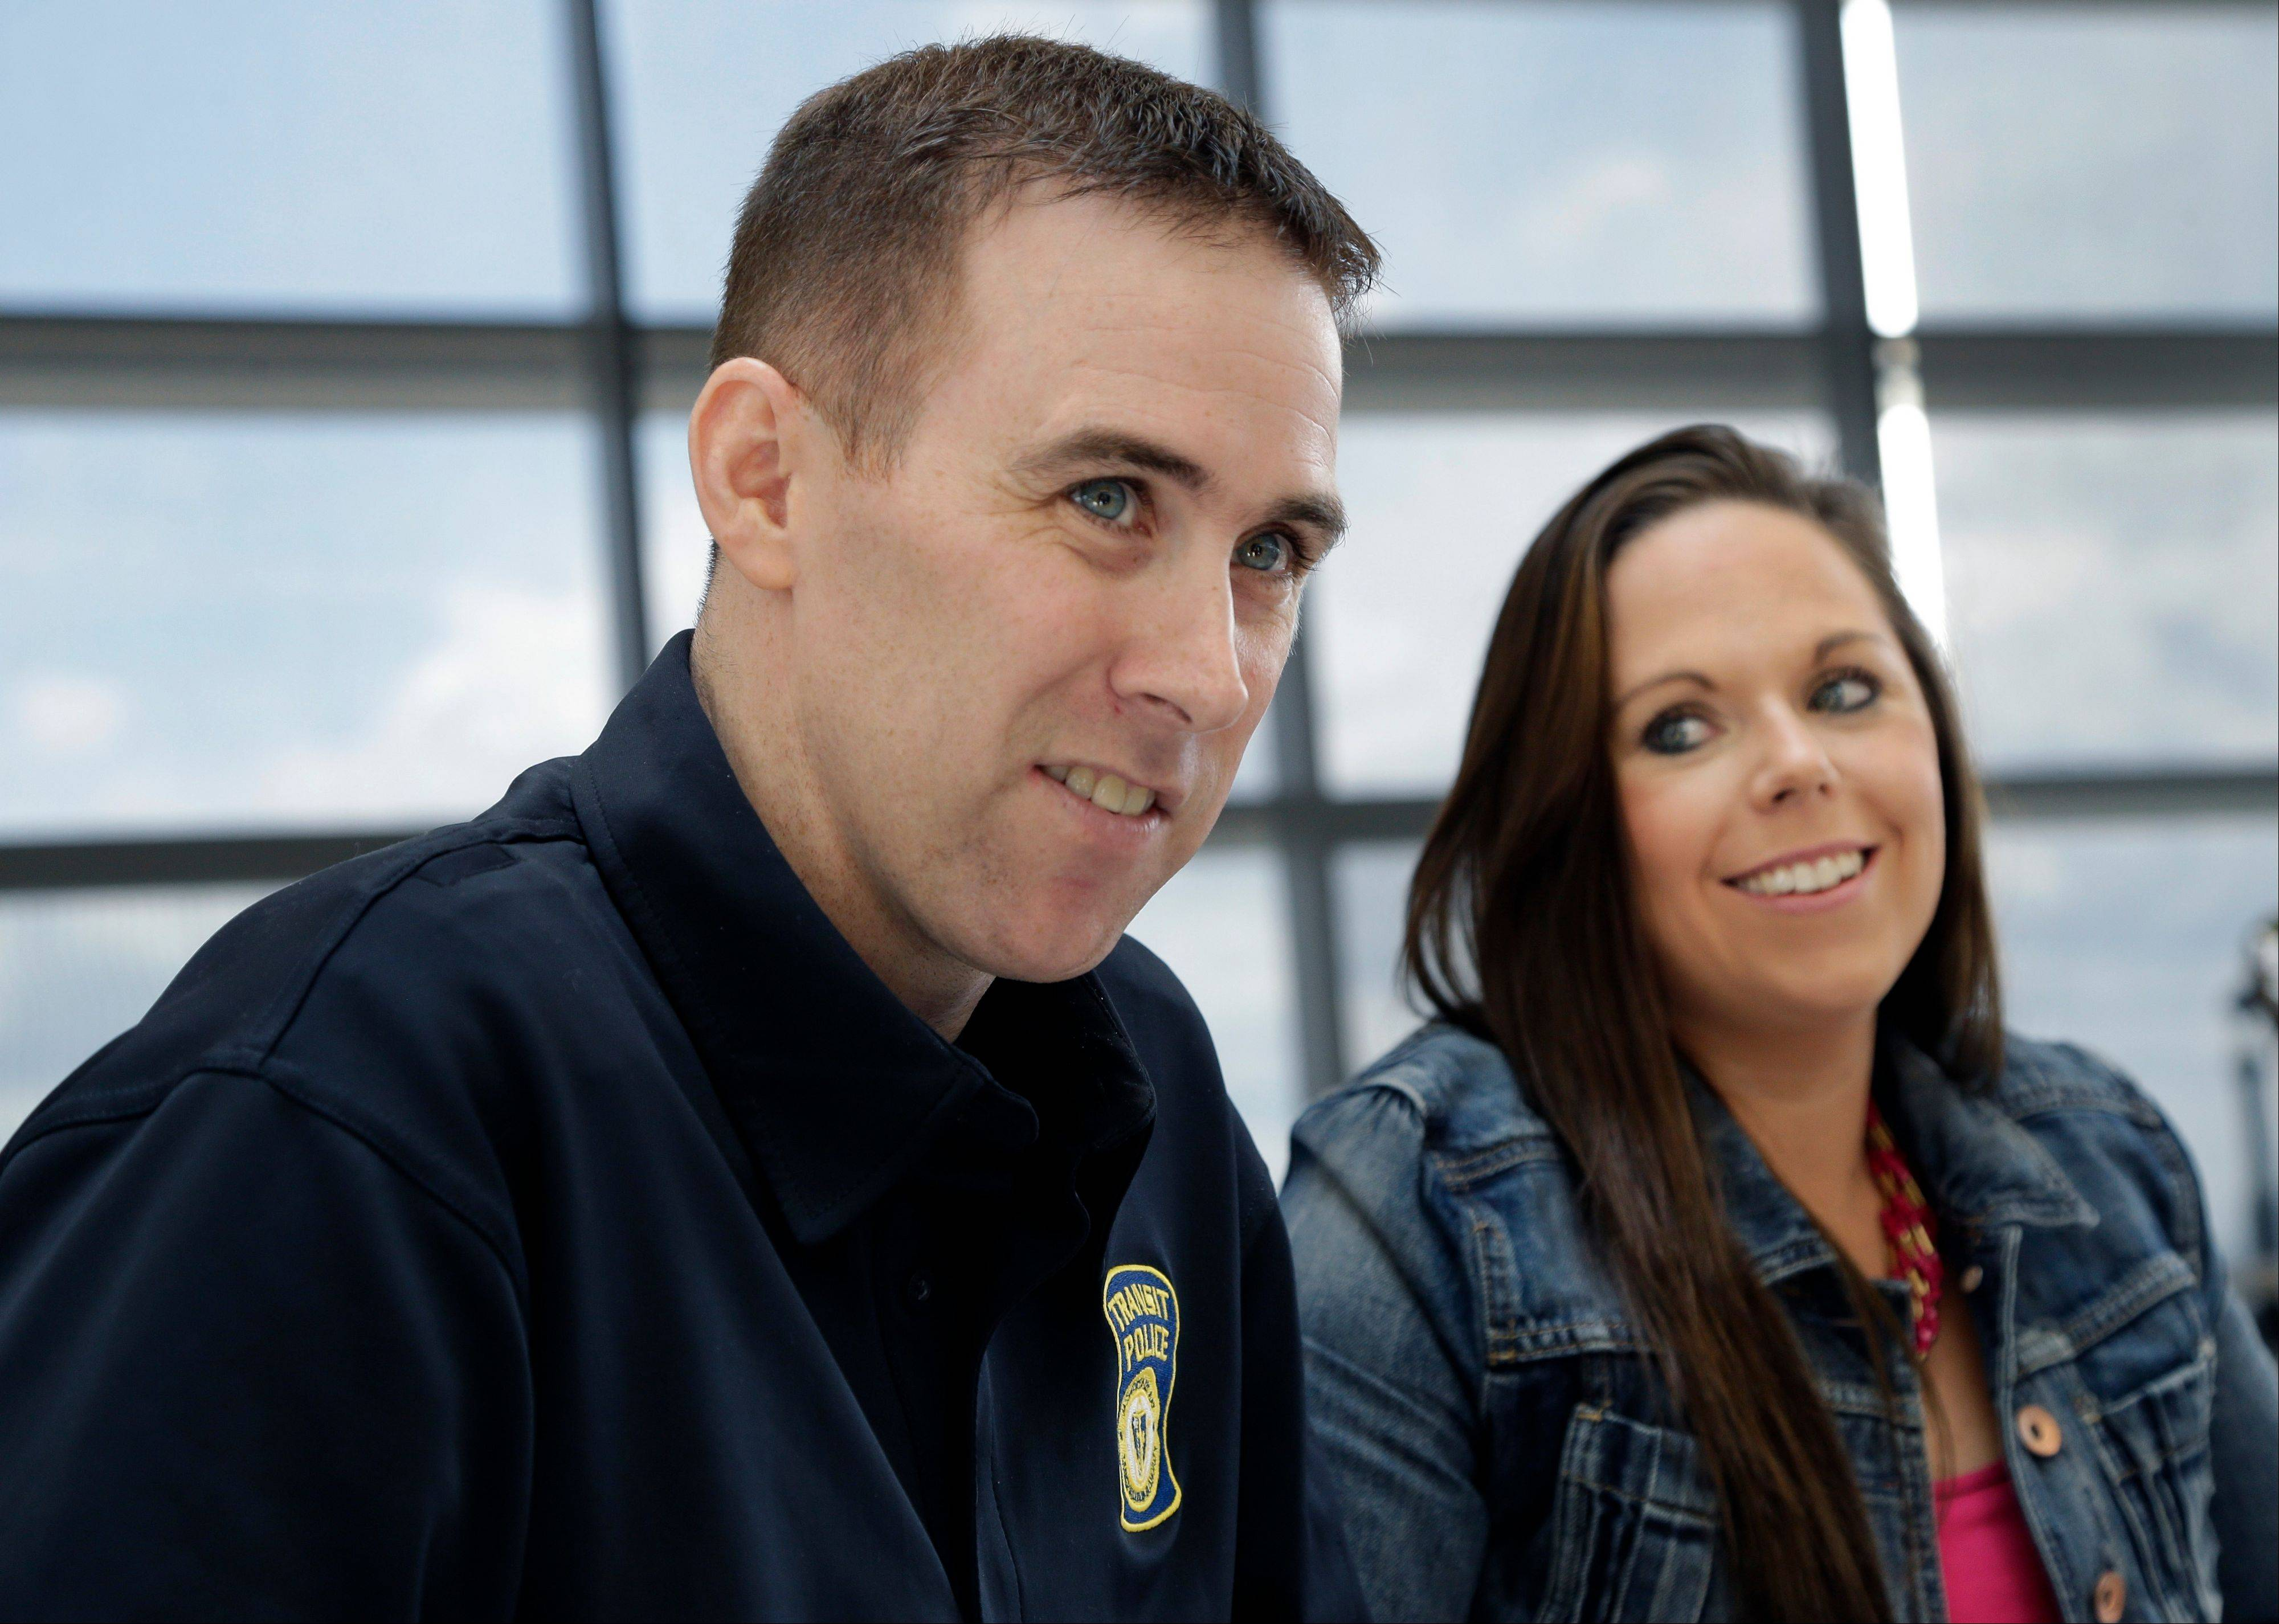 MBTA Police Officer Richard Donahue smiles with his wife, Kim, during an interview at Spaulding Rehabilitation Hospital in Boston's Charlestown section, Sunday, May 19, 2013. Donahue almost lost his life after being shot during the crossfire with the Boston Marathon bombing suspects in Watertown, Mass.